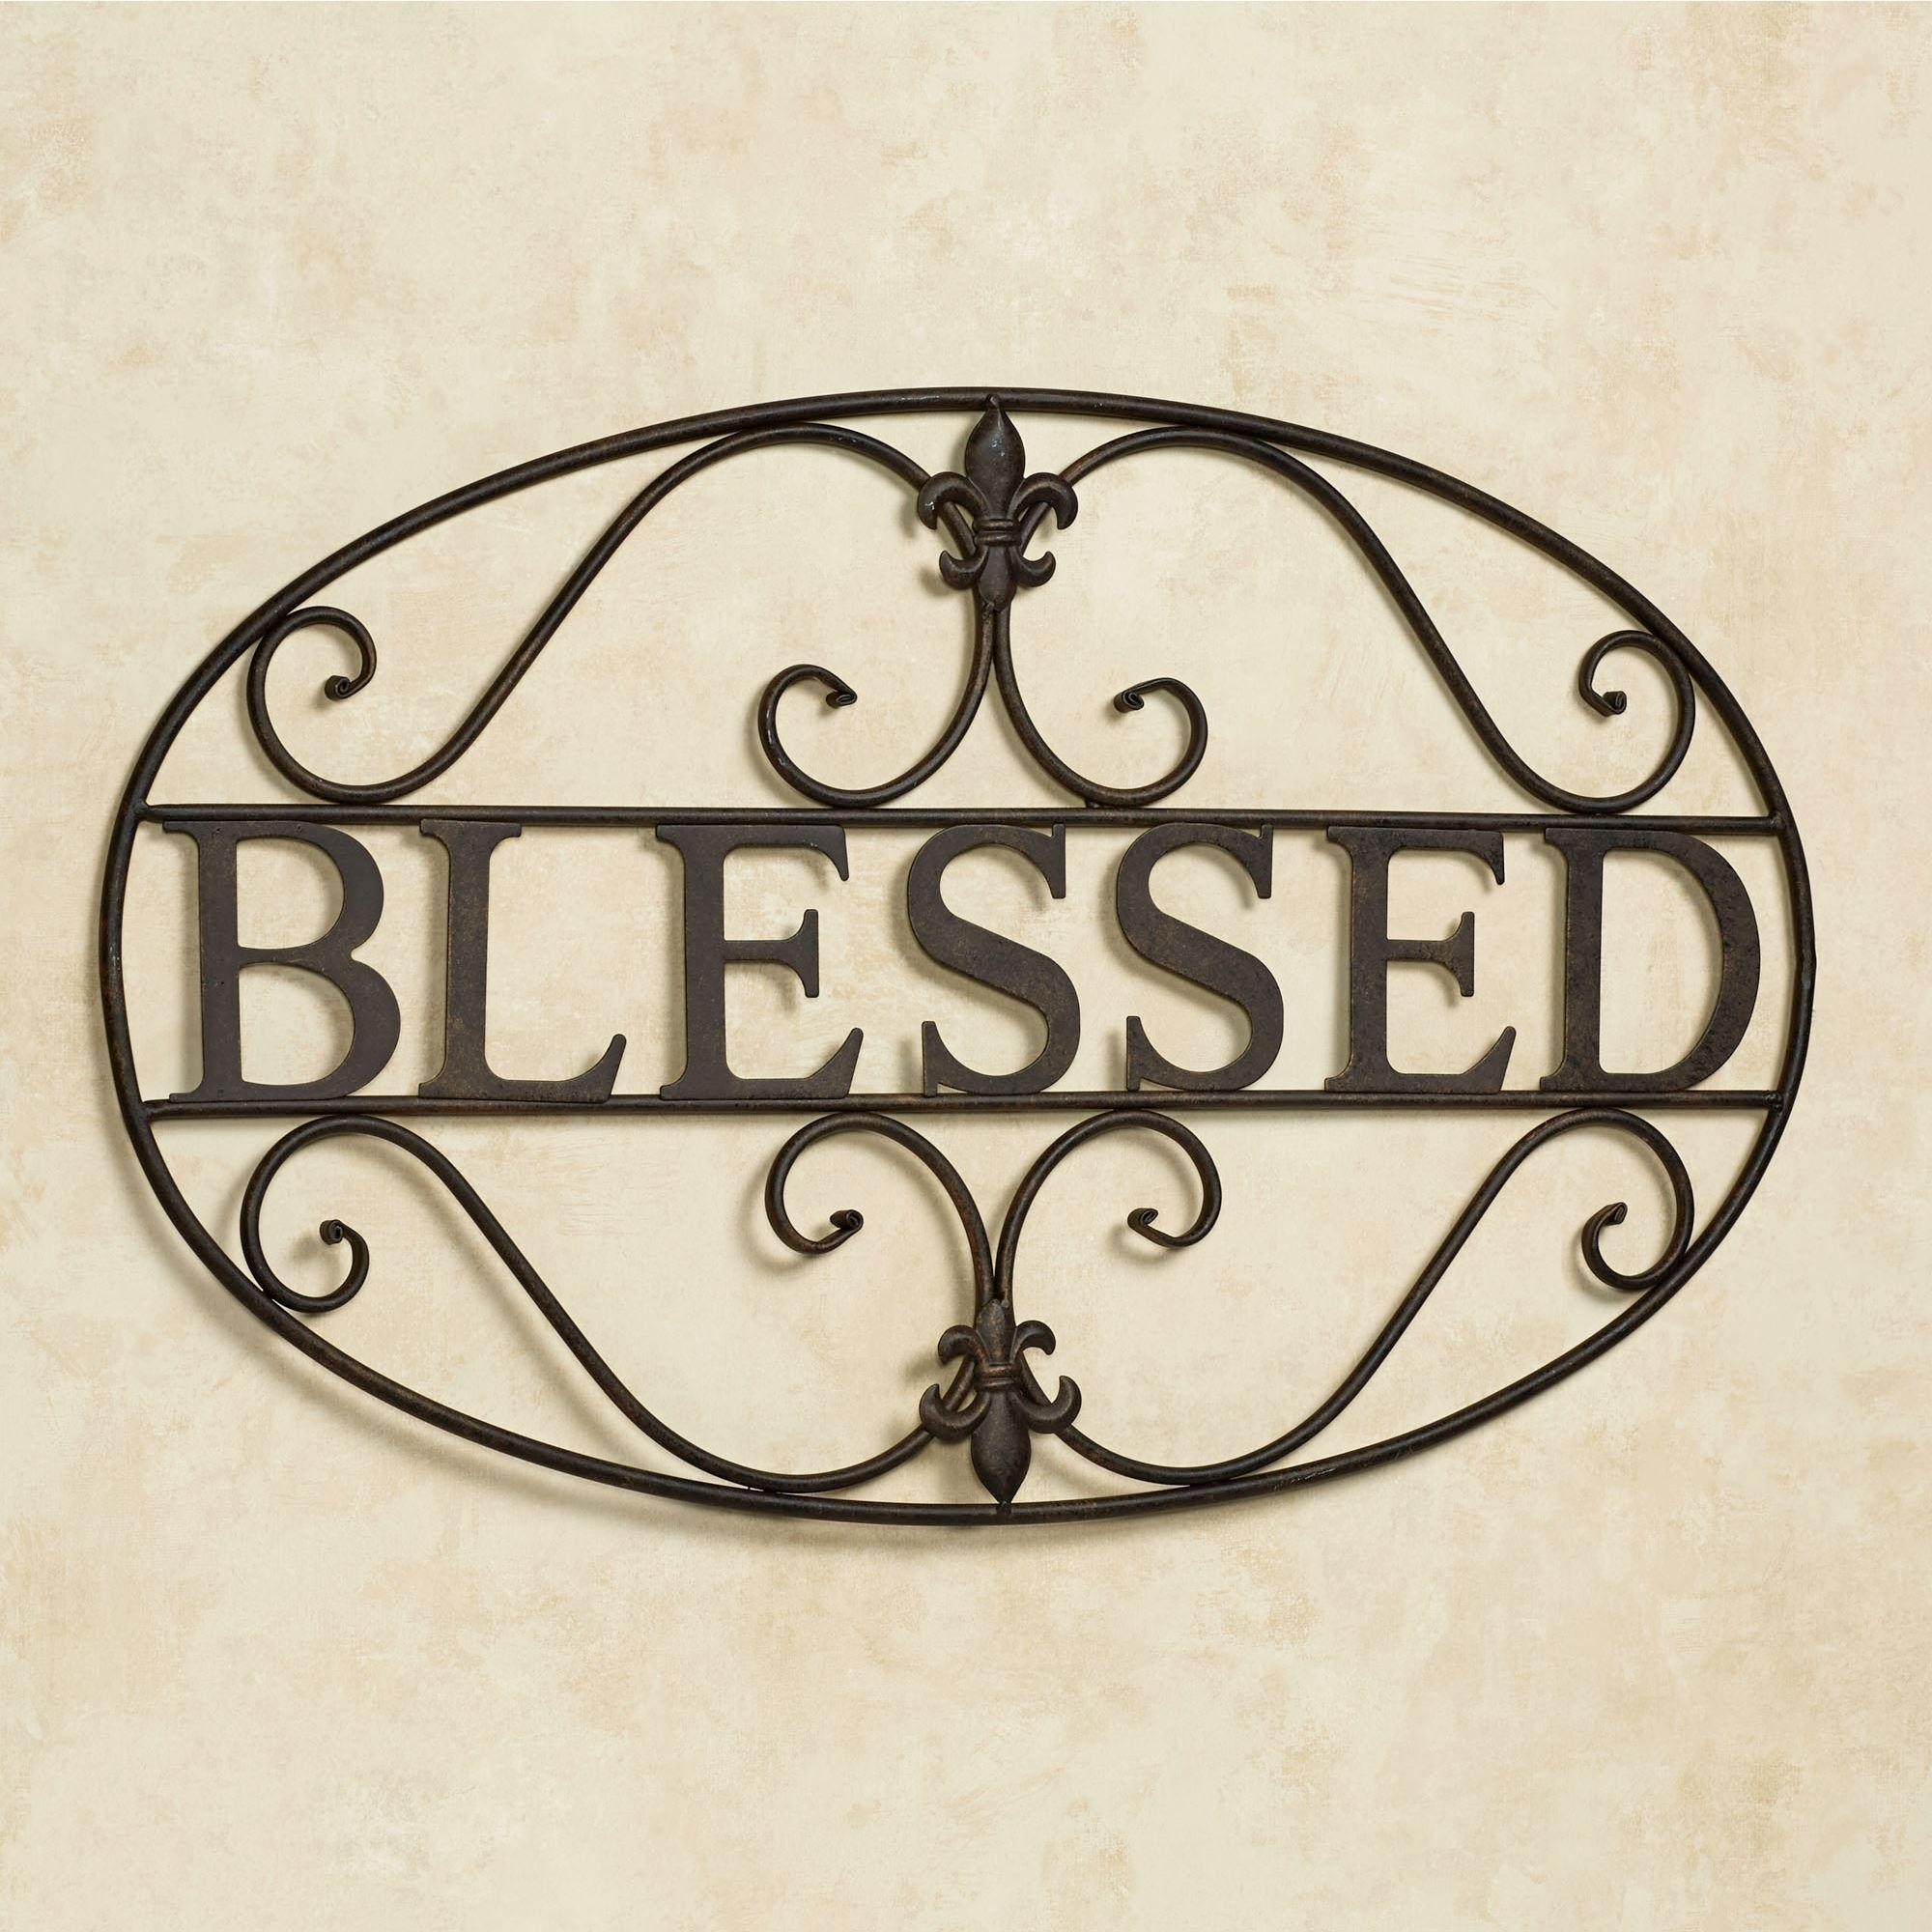 Blessed Fleur De Lis Metal Wall Art With Fleur De Lis Metal Wall Art (Image 1 of 20)